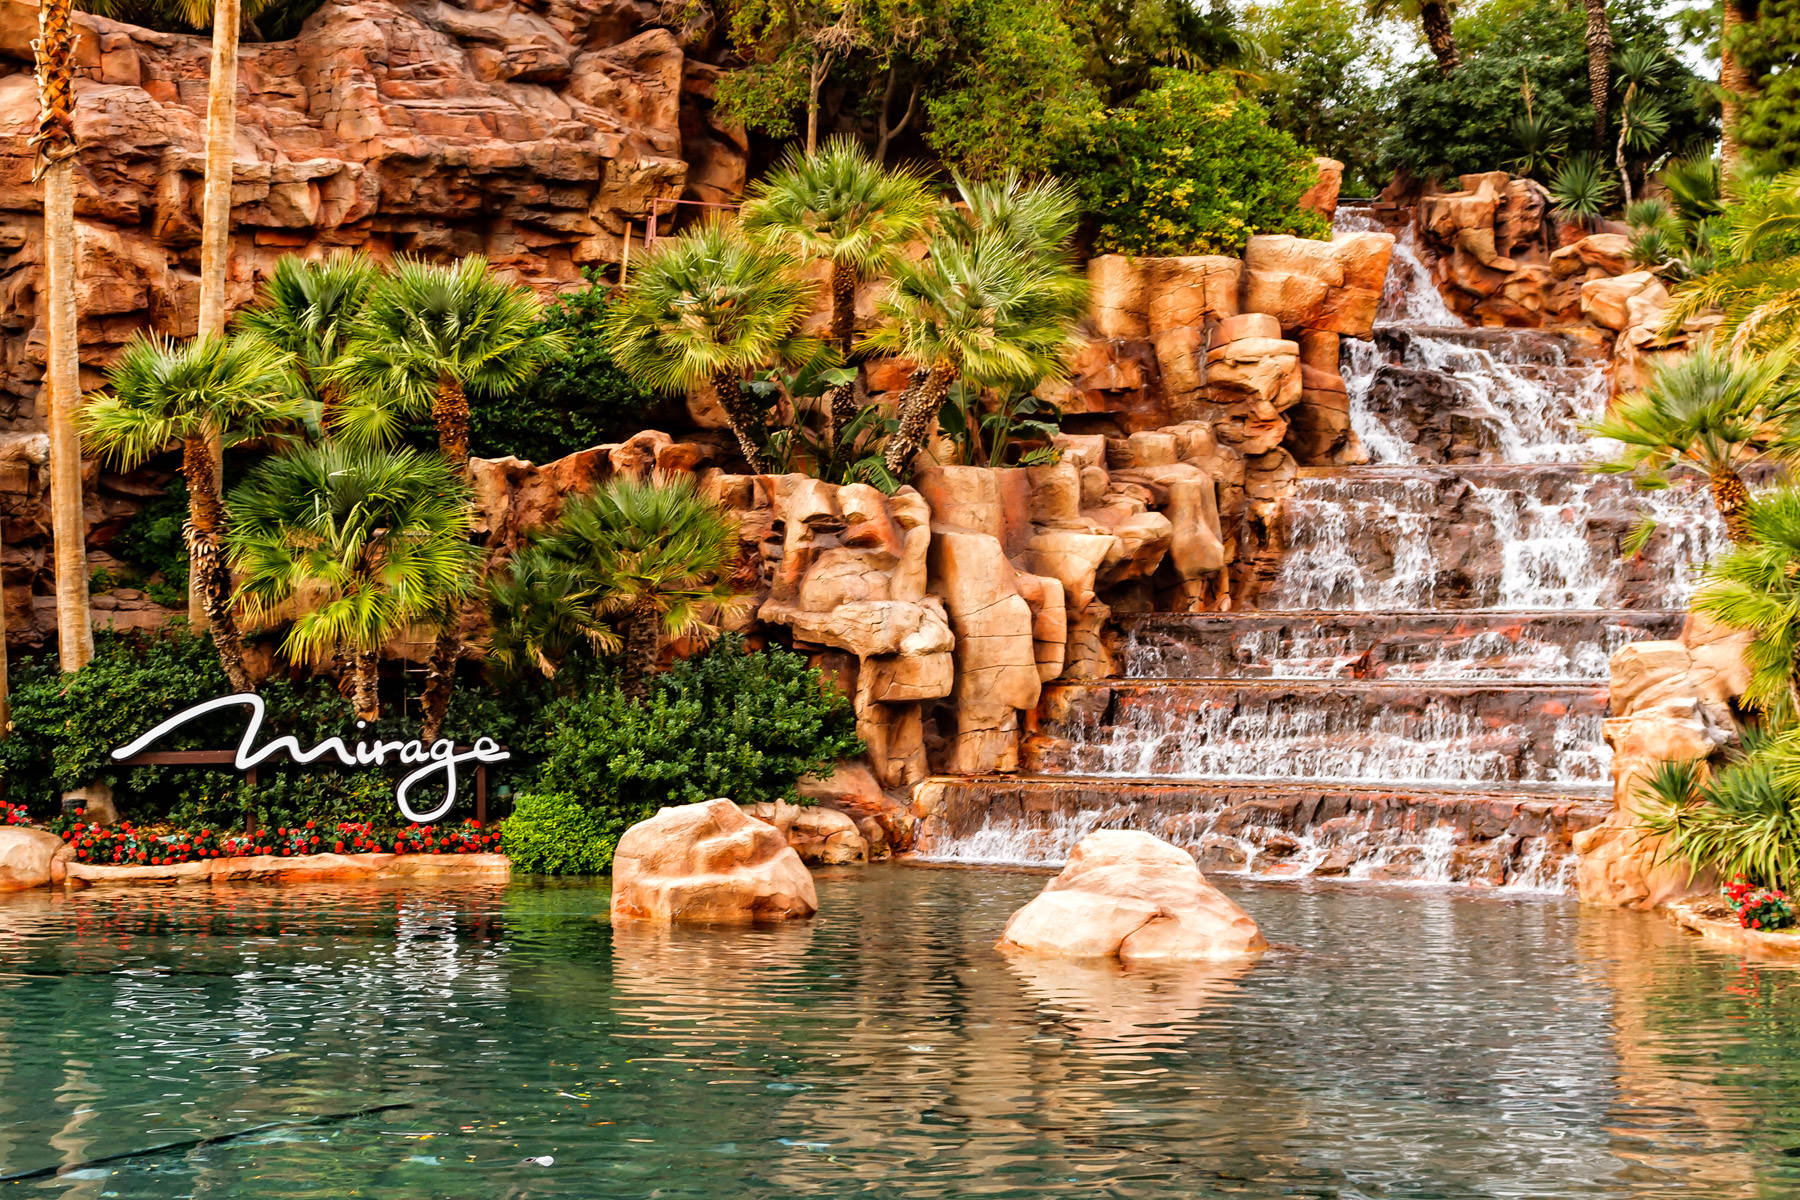 The waterfall at The Mirage, Las Vegas.